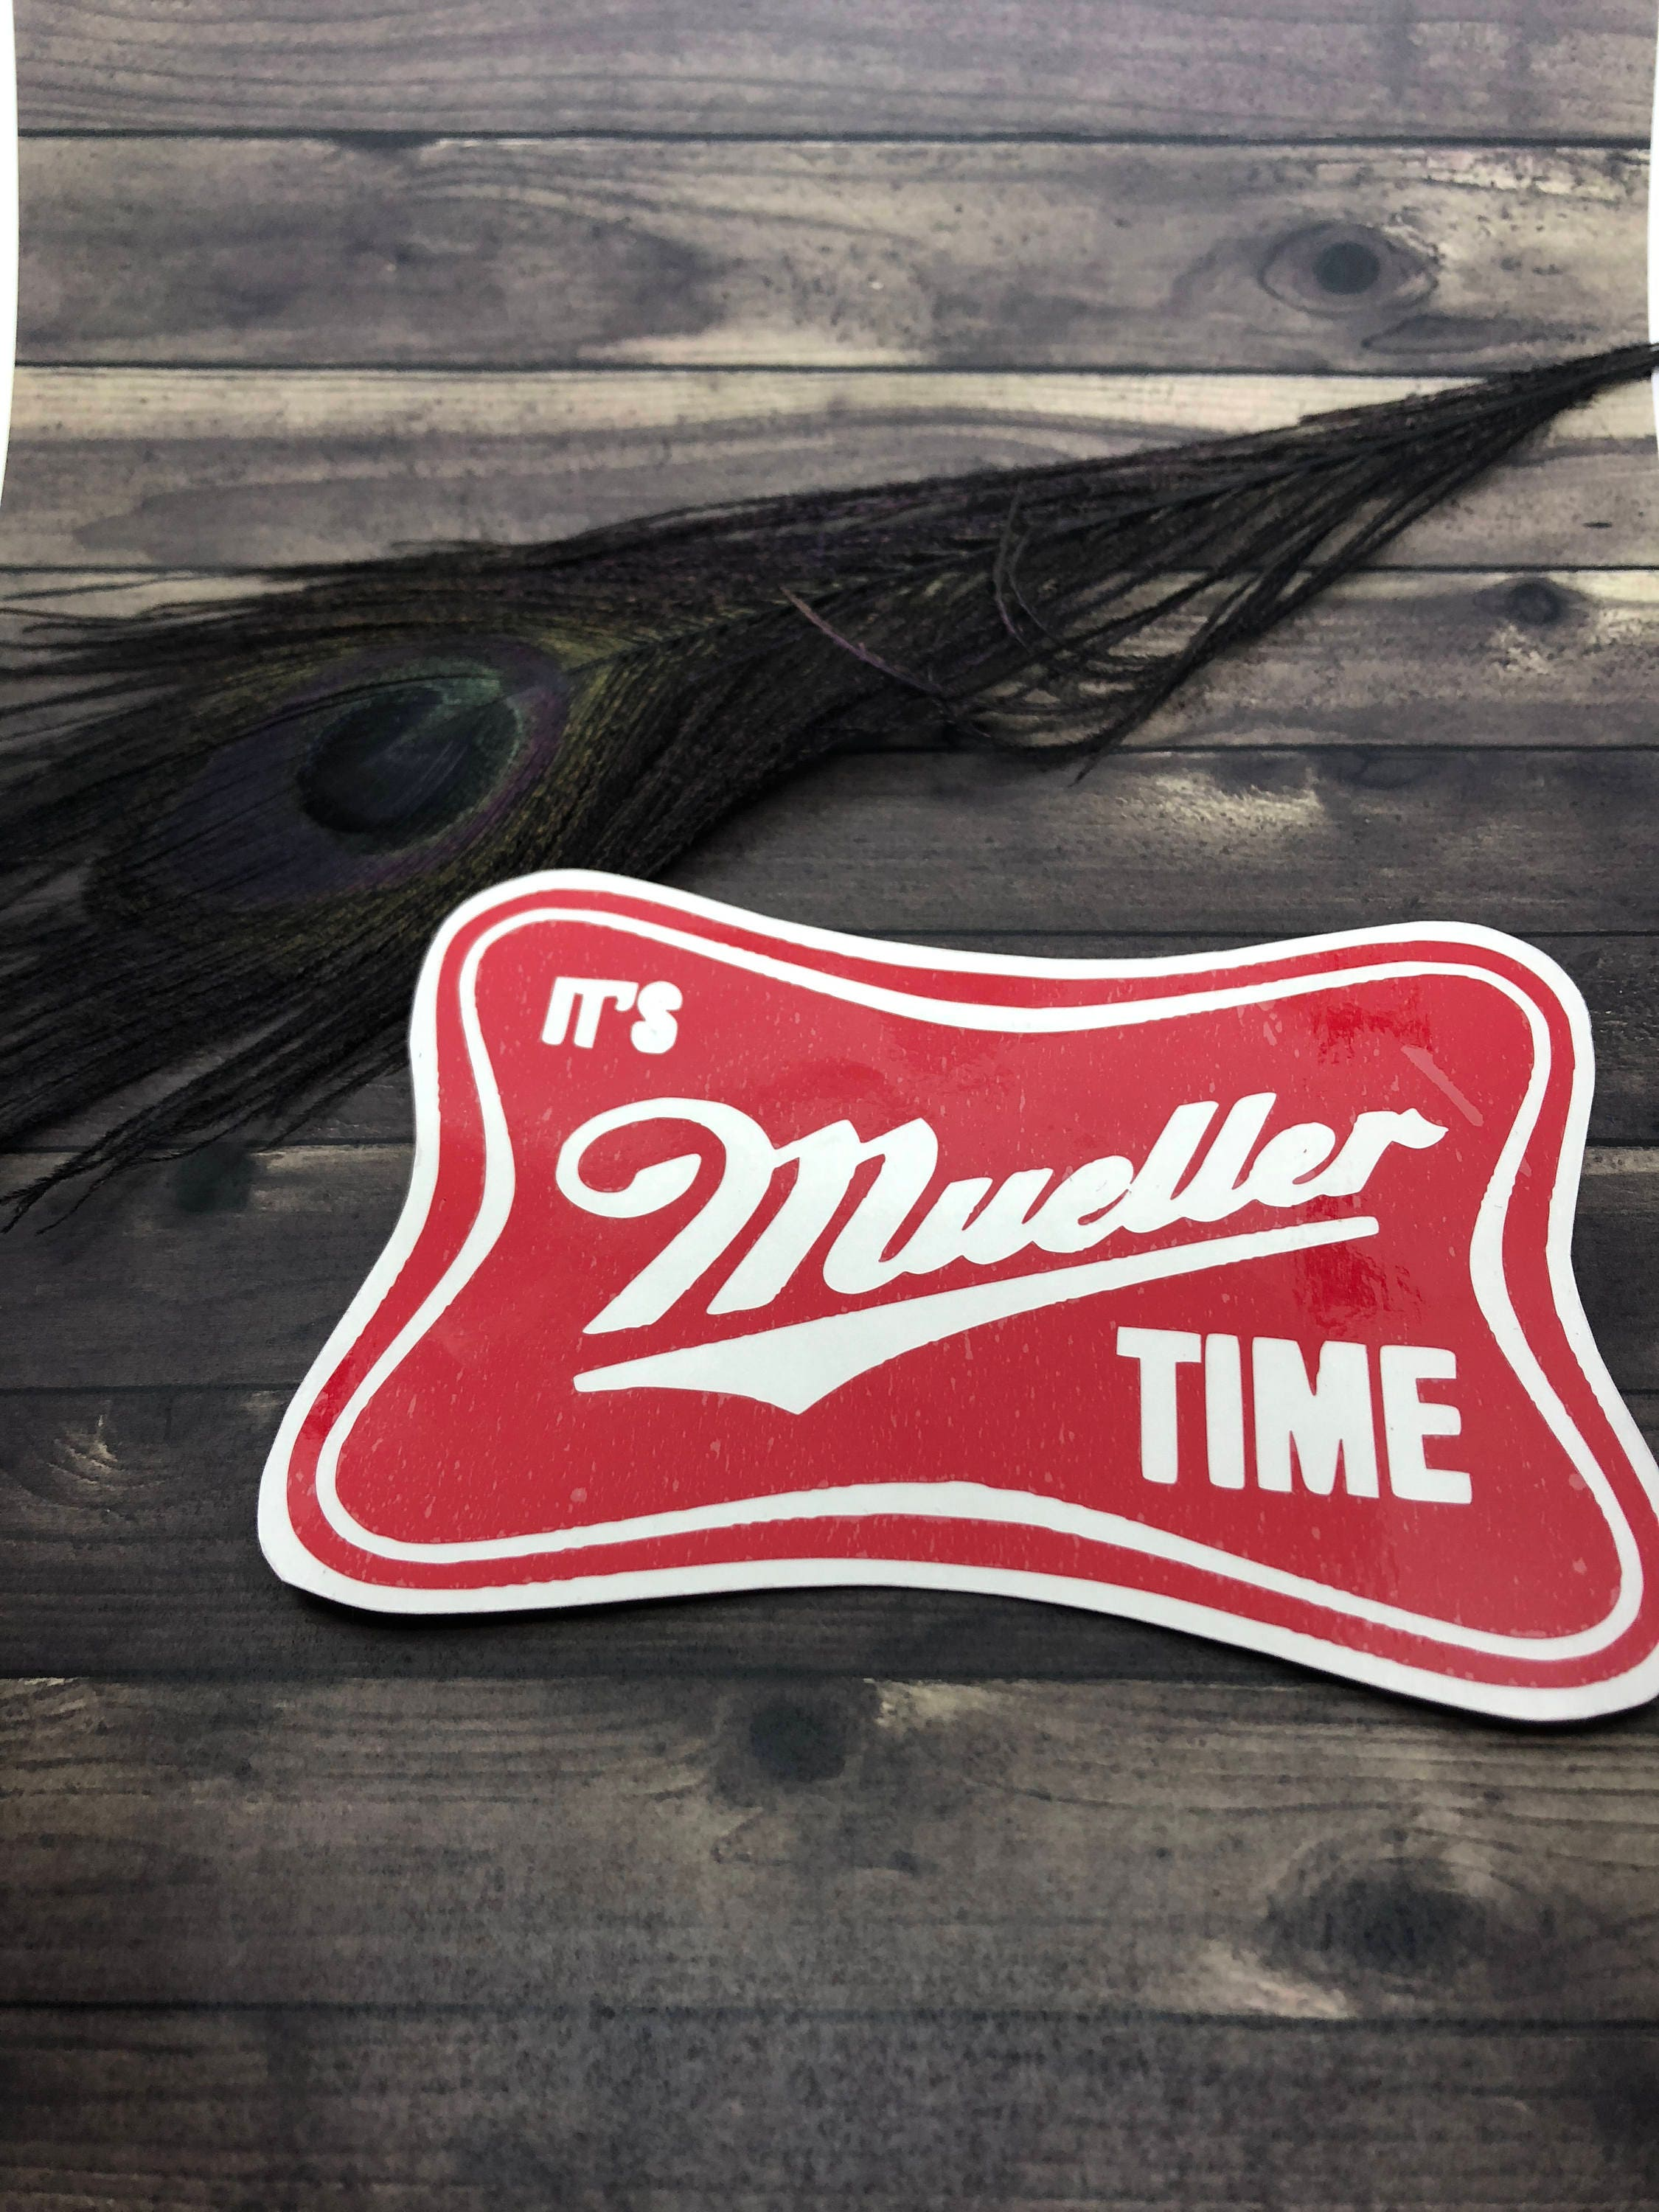 Custom Vinyl Decal Anti Trump Sticker Mueller Time Pattern Etsy